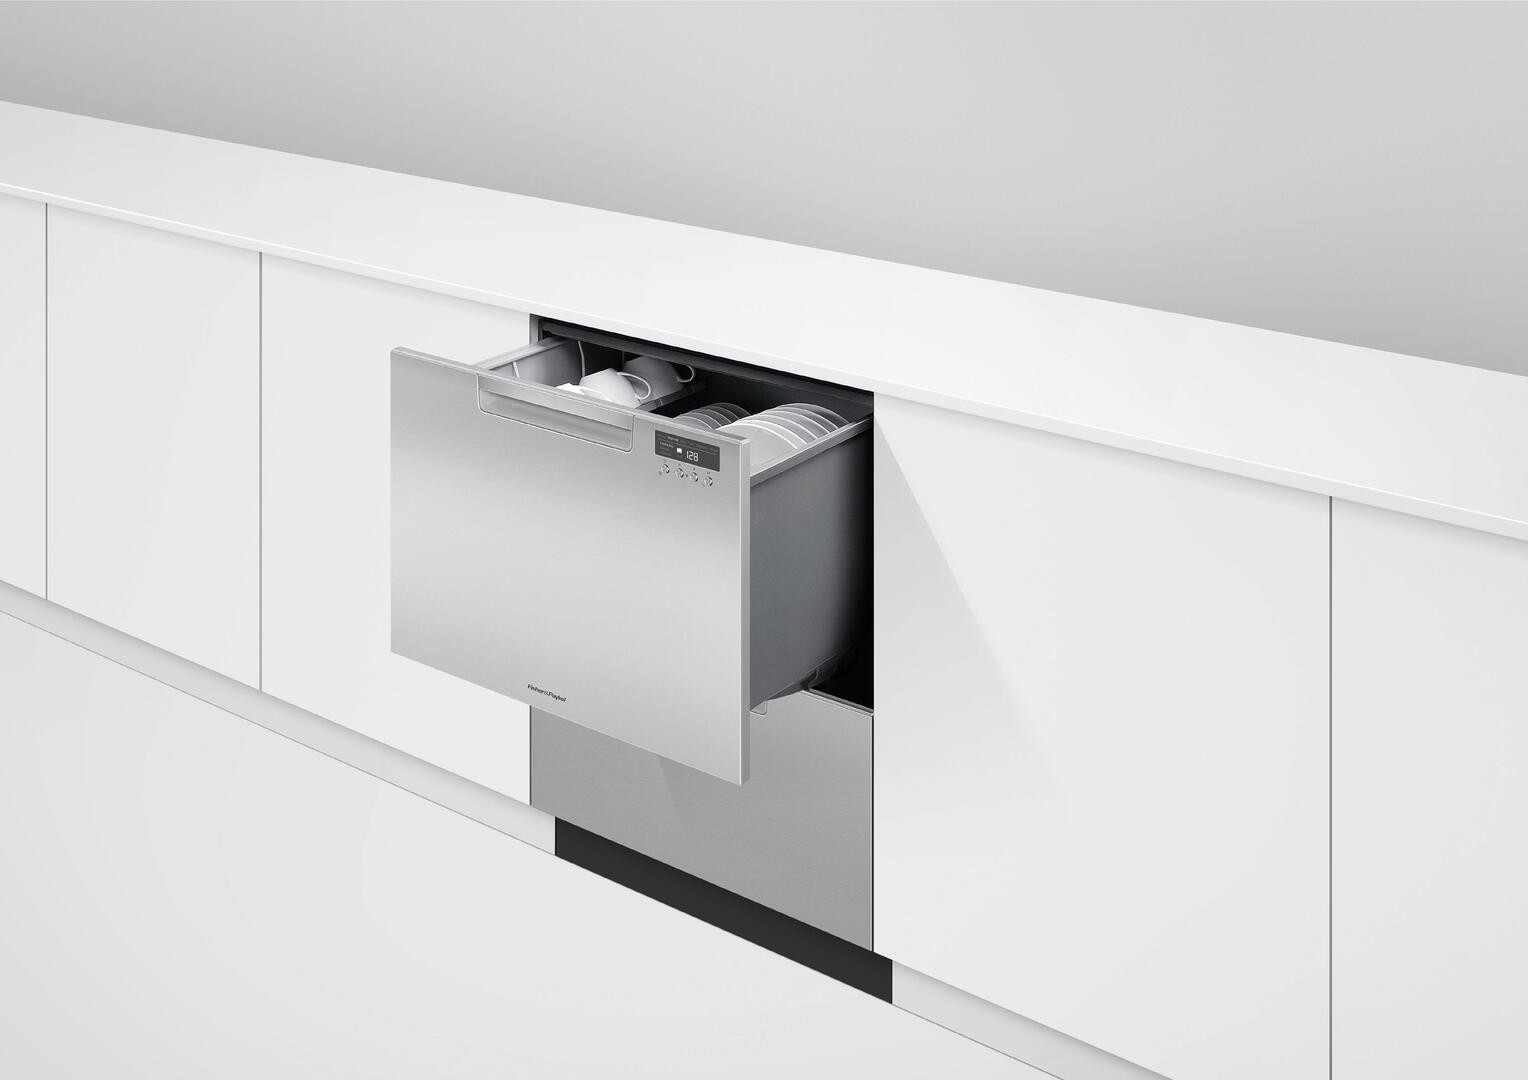 Fisher and paykel 2 drawer dishwasher -  Fisher Paykel 2